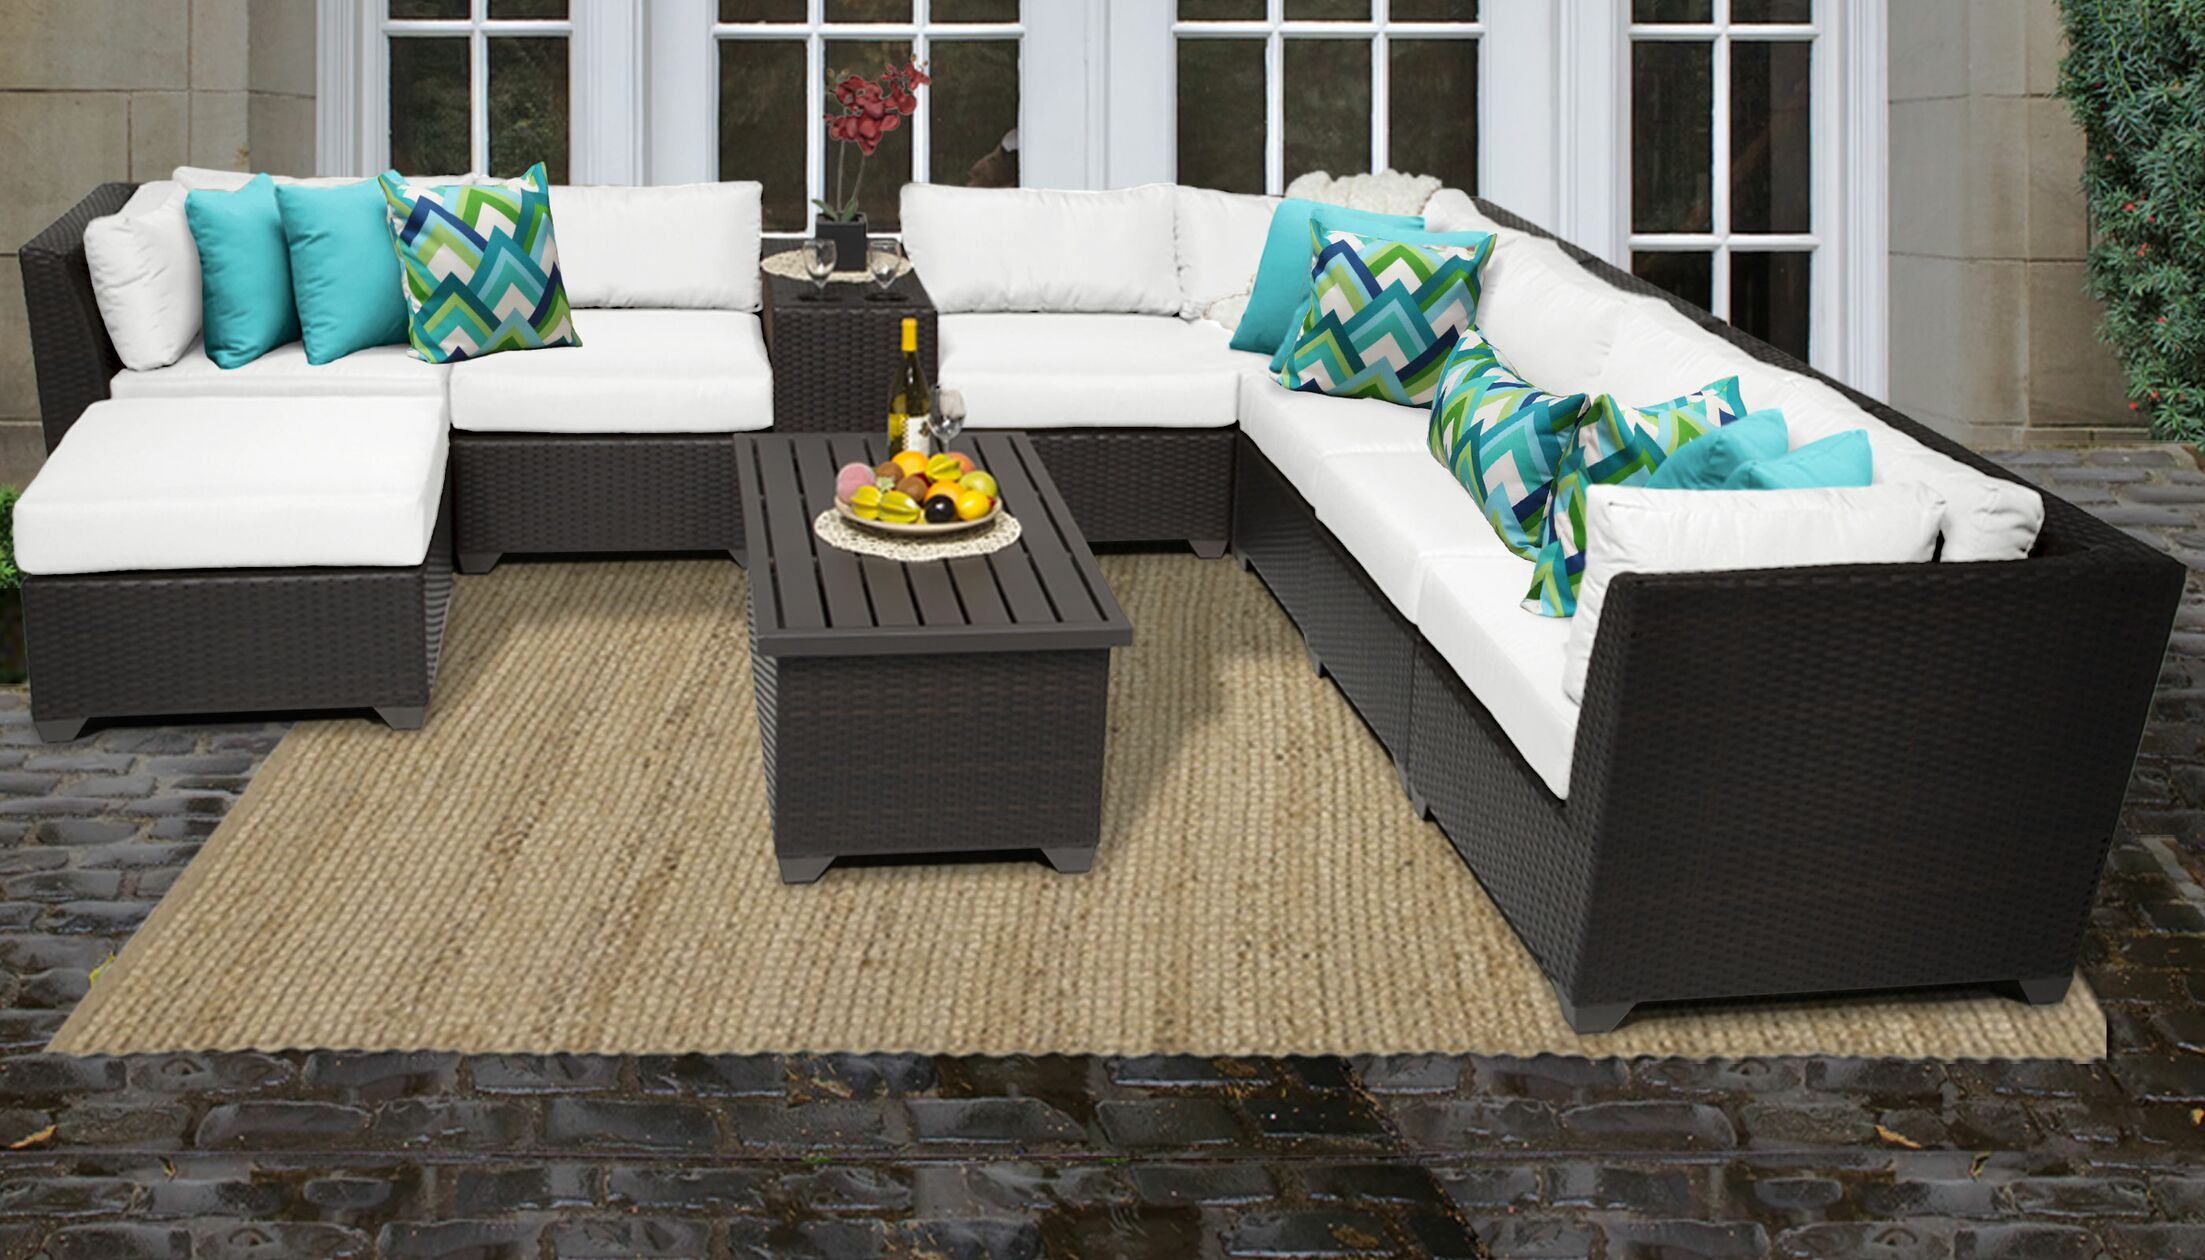 Barbados 10 Piece Rattan Sectional Set with Cushions Color: White